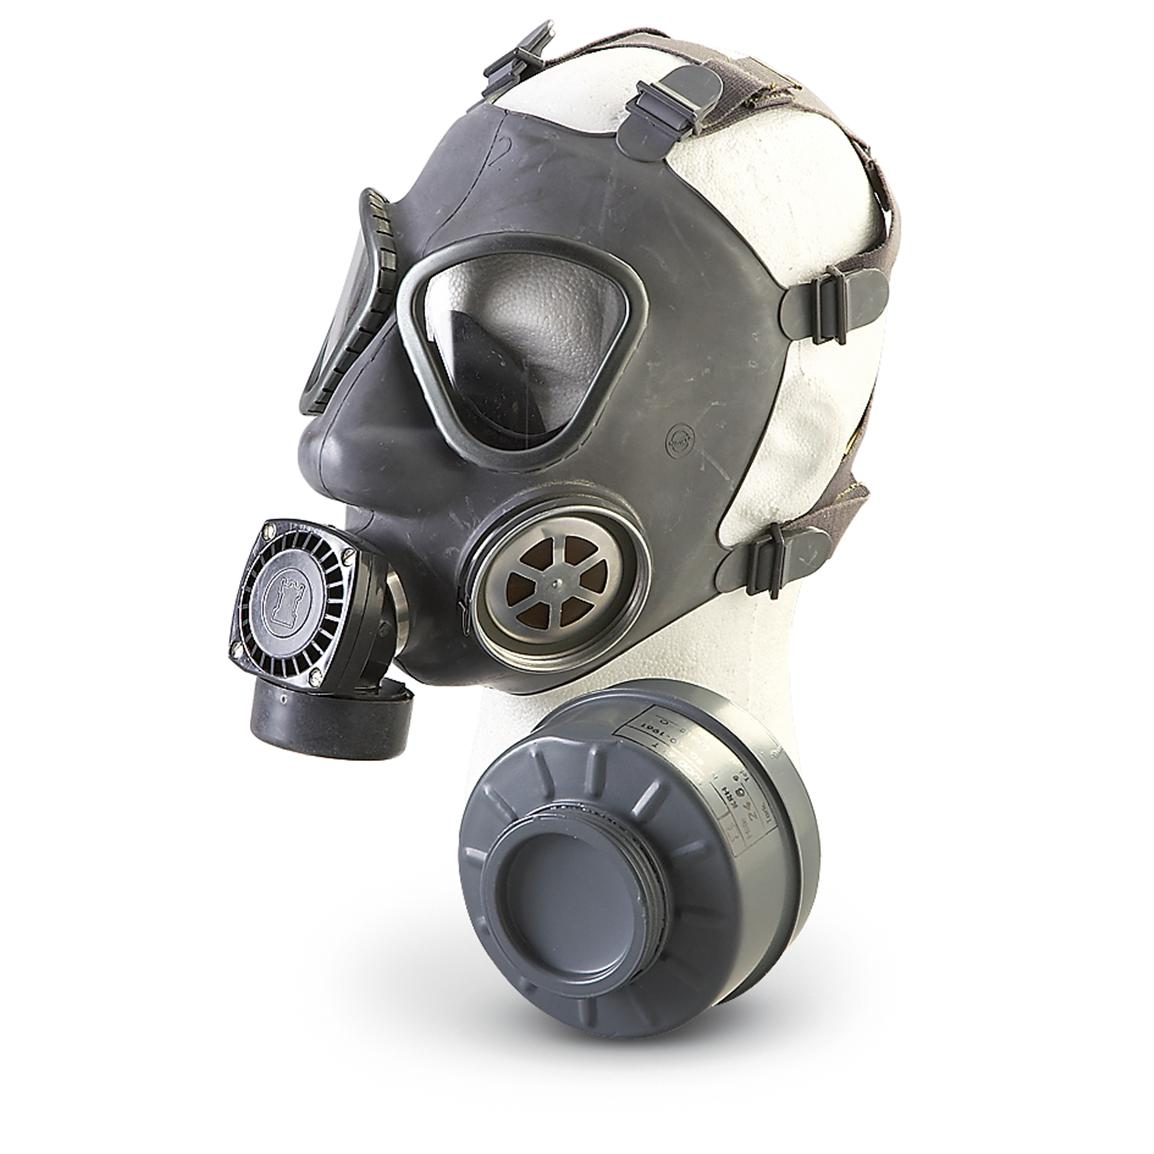 New Finnish Military Surplus Gas Mask with Bag